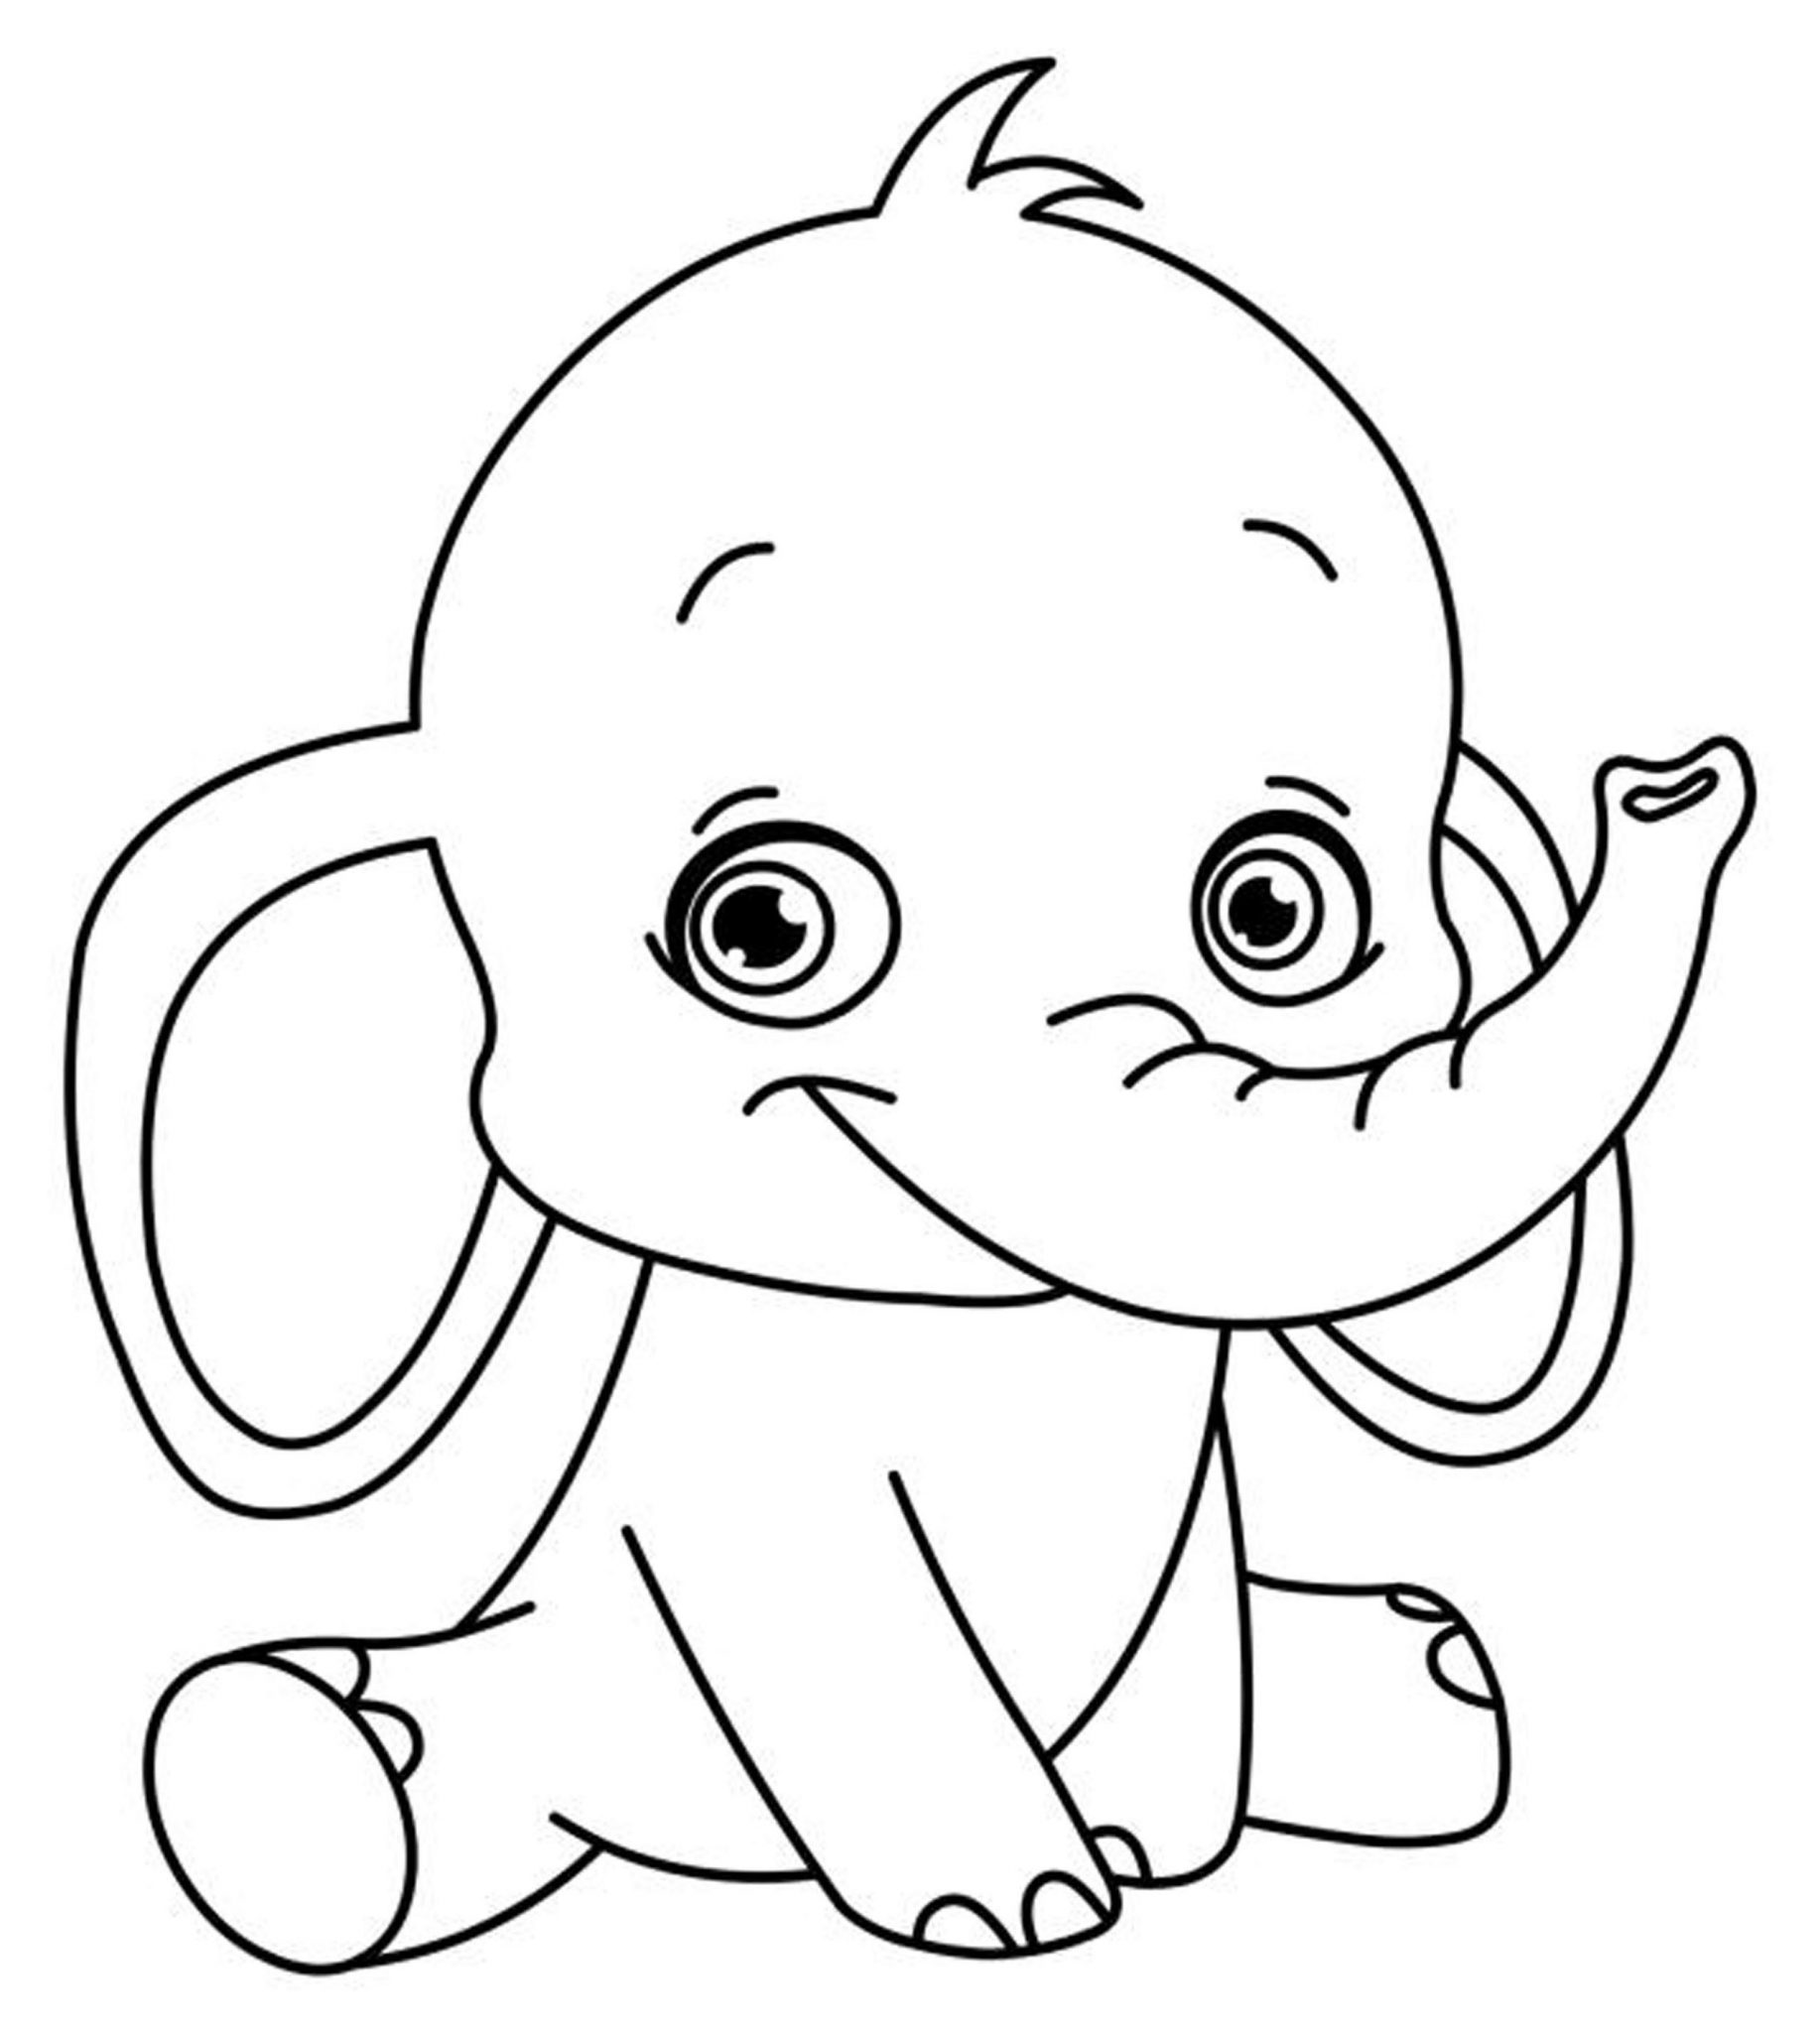 33 Free Disney Coloring Pages For Kids